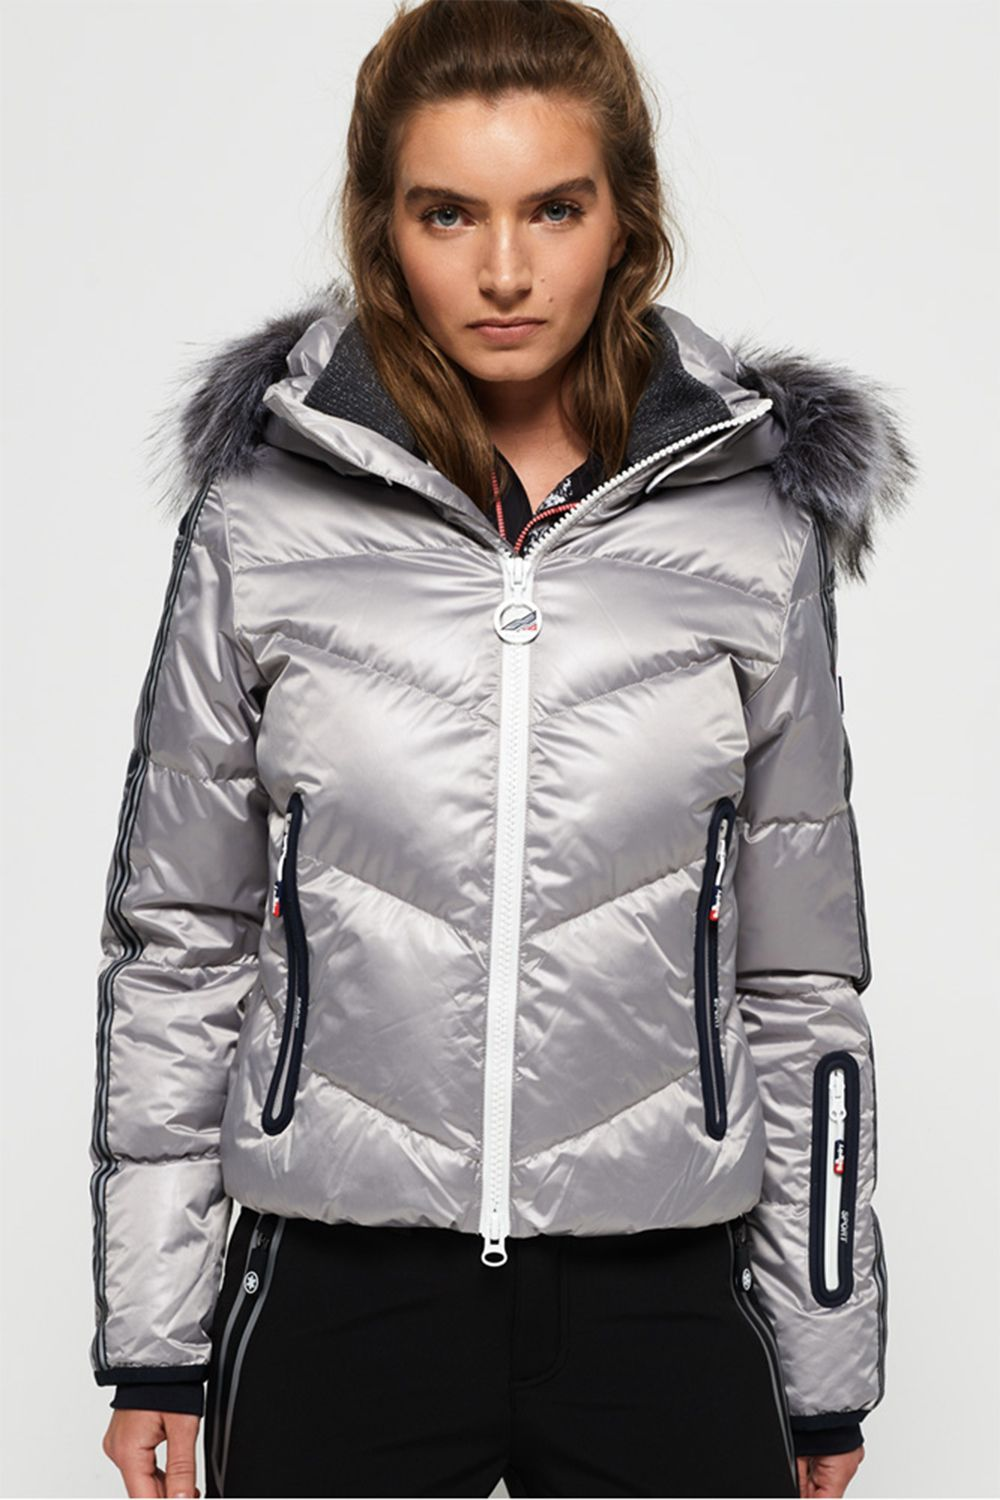 Womens Ski Wear The Best And Most Stylish Snow Ready Clothes For